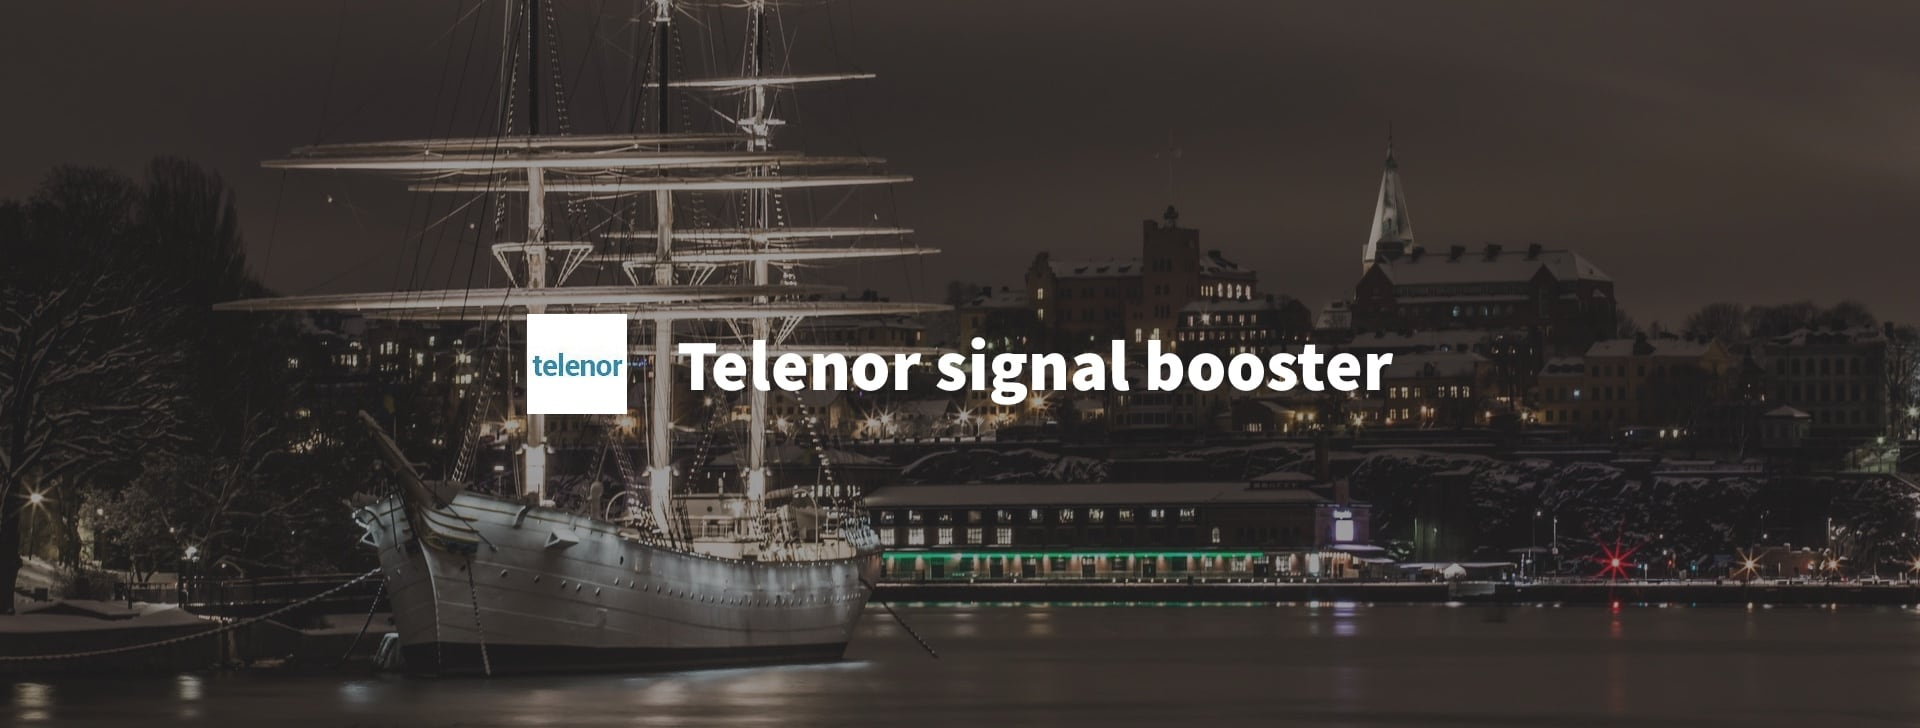 Telenor mobile signal